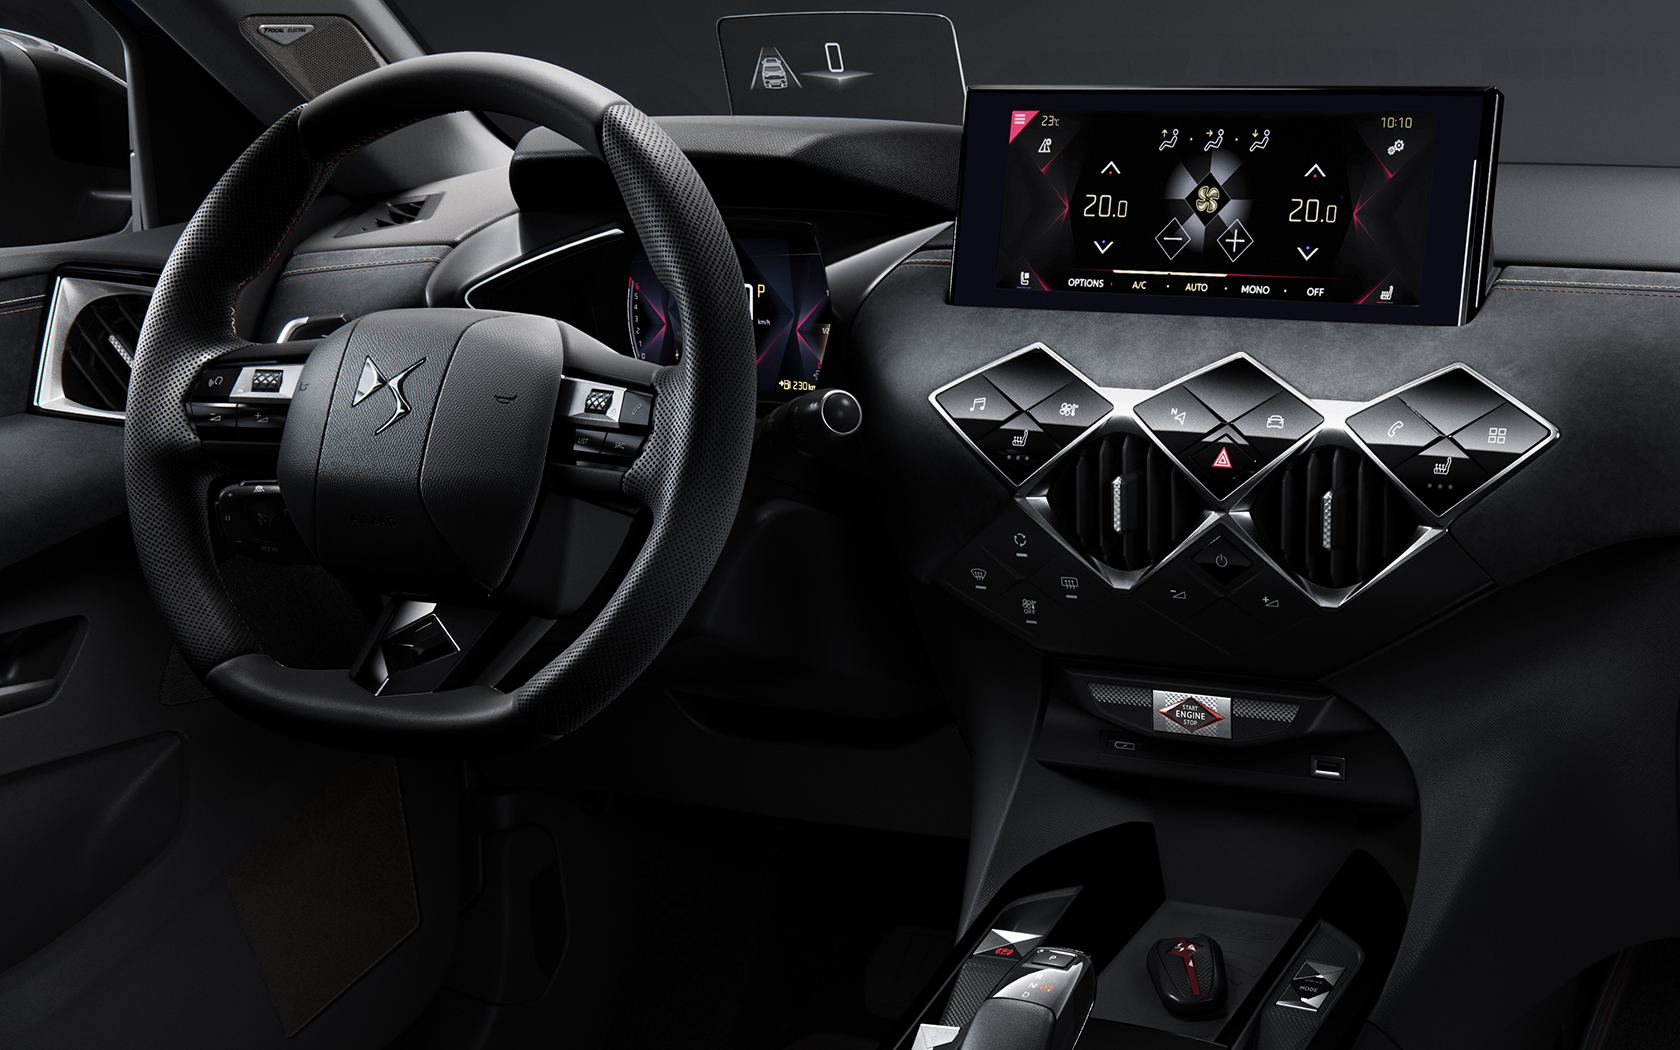 DS 3 Crossback - 2018 - steering wheel / volant - DS Performance Line